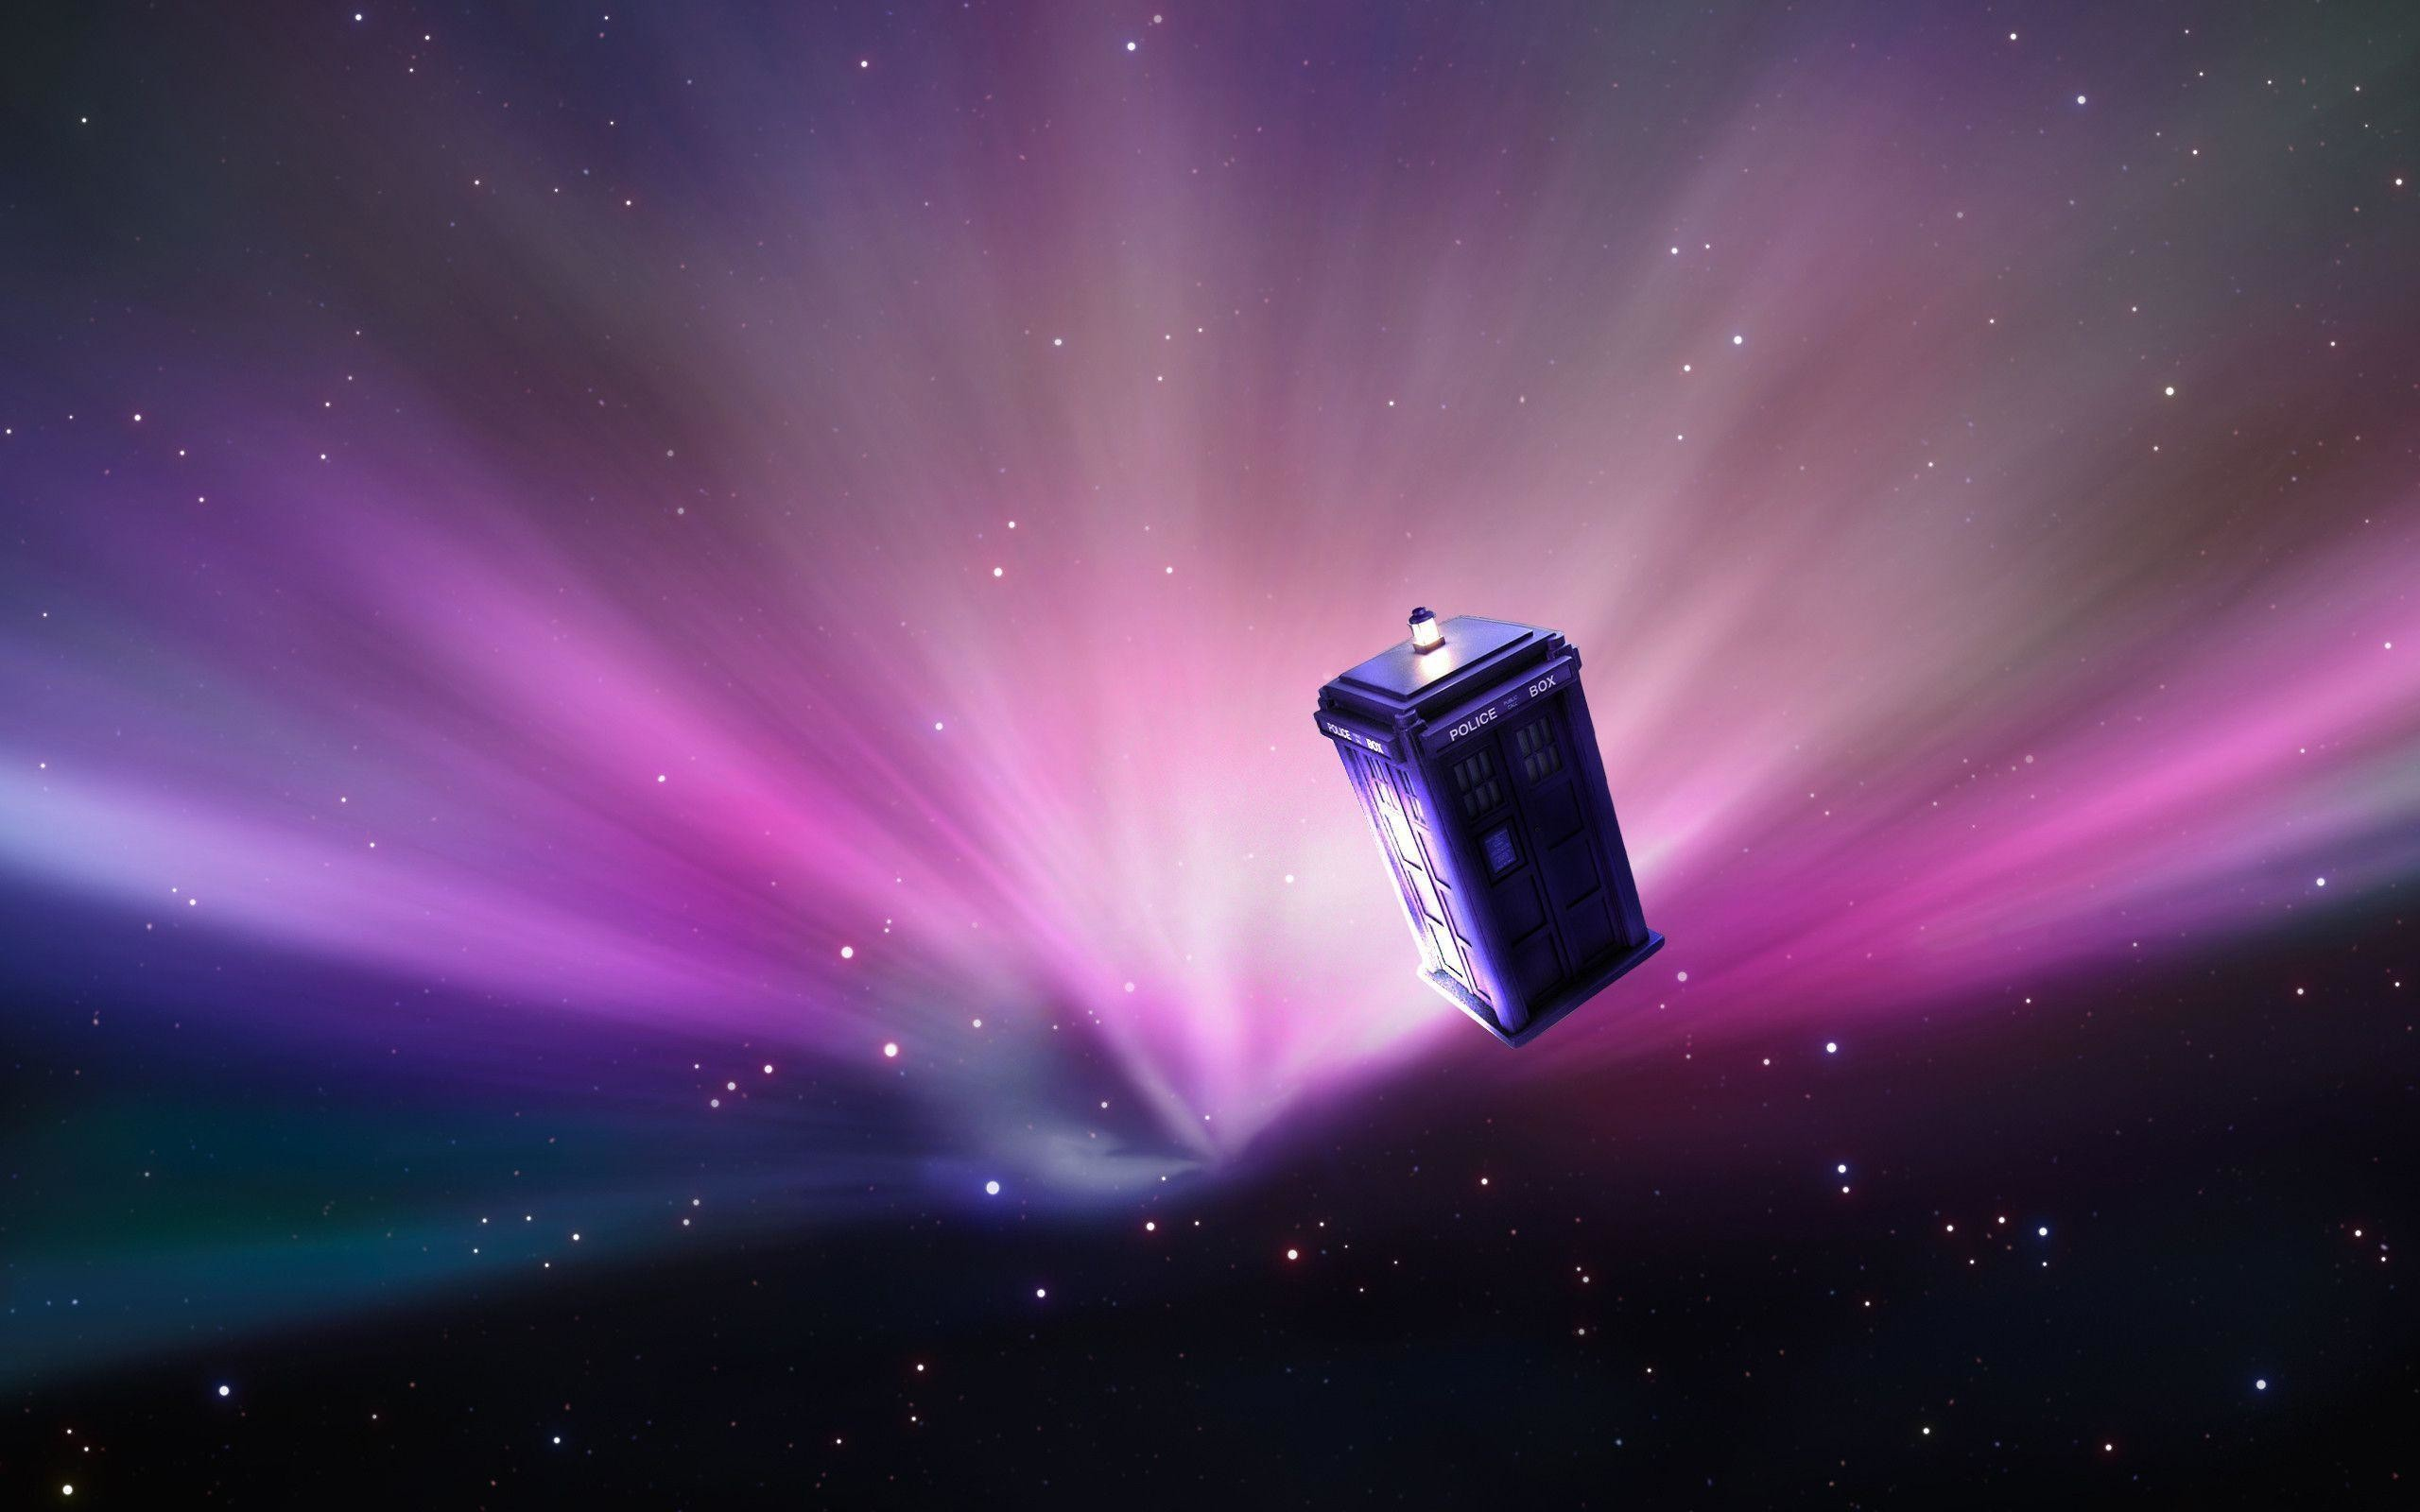 2560x1600 yiqe4L74T doctor who wallpaper HD free wallpapers backgrounds .